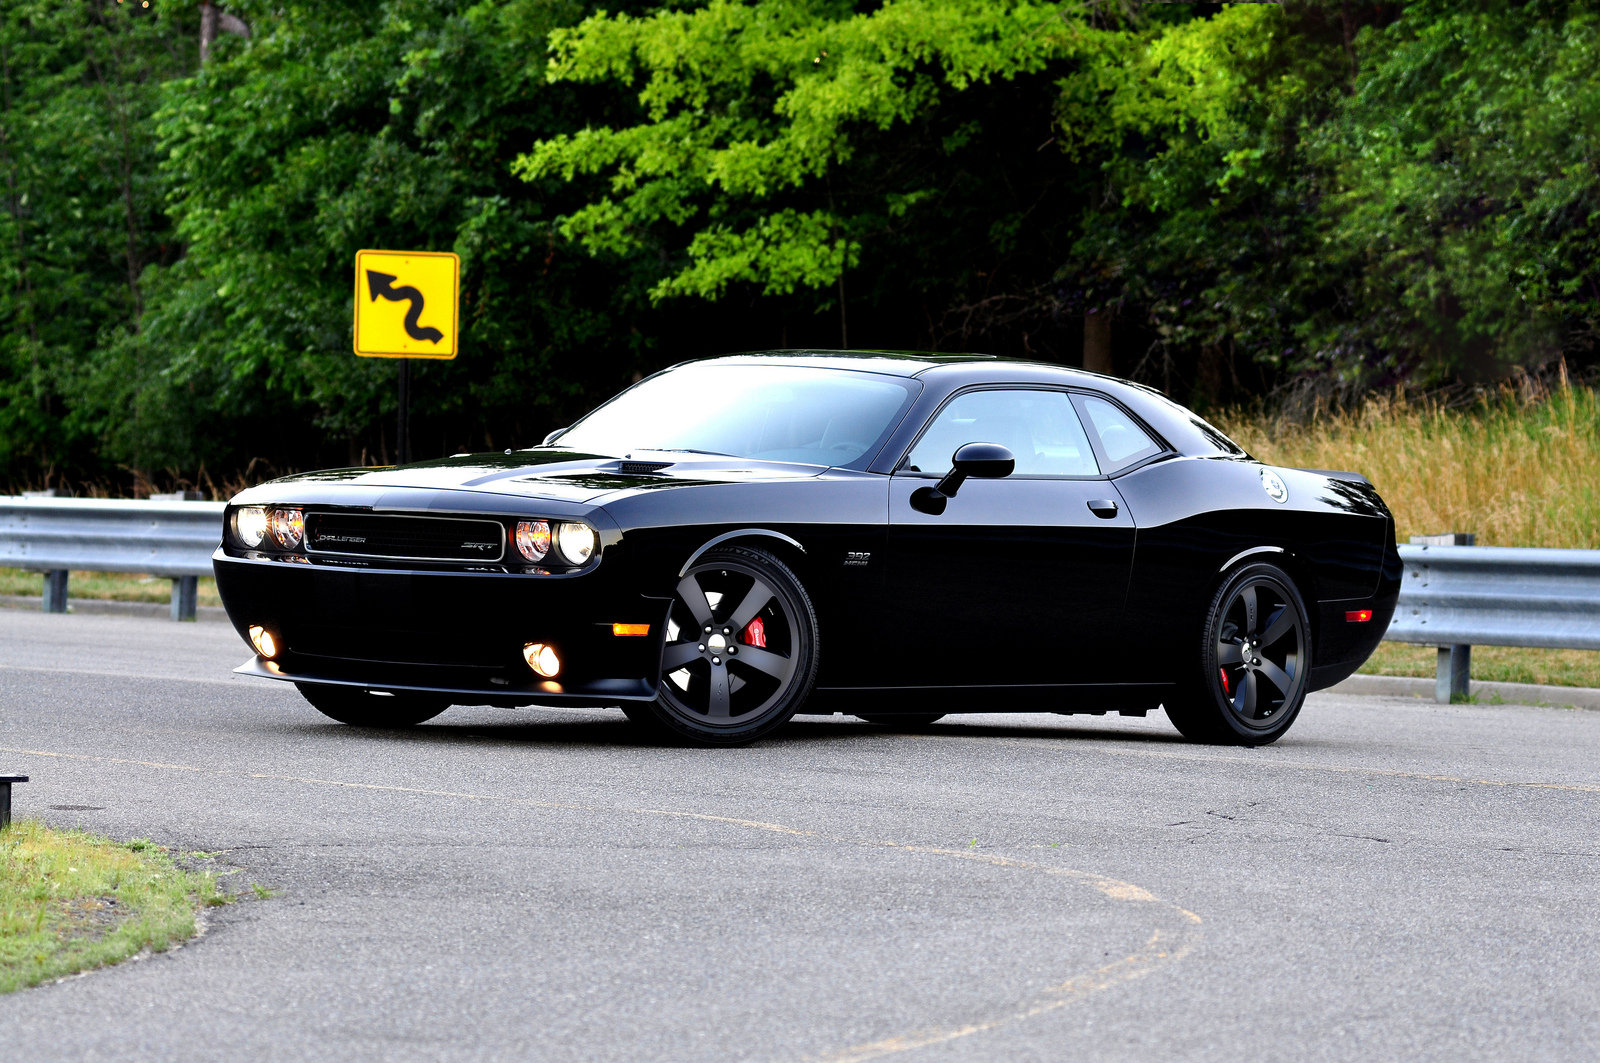 2011 Dodge Challenger SRT8 Pitch Black | car review @ Top Speed